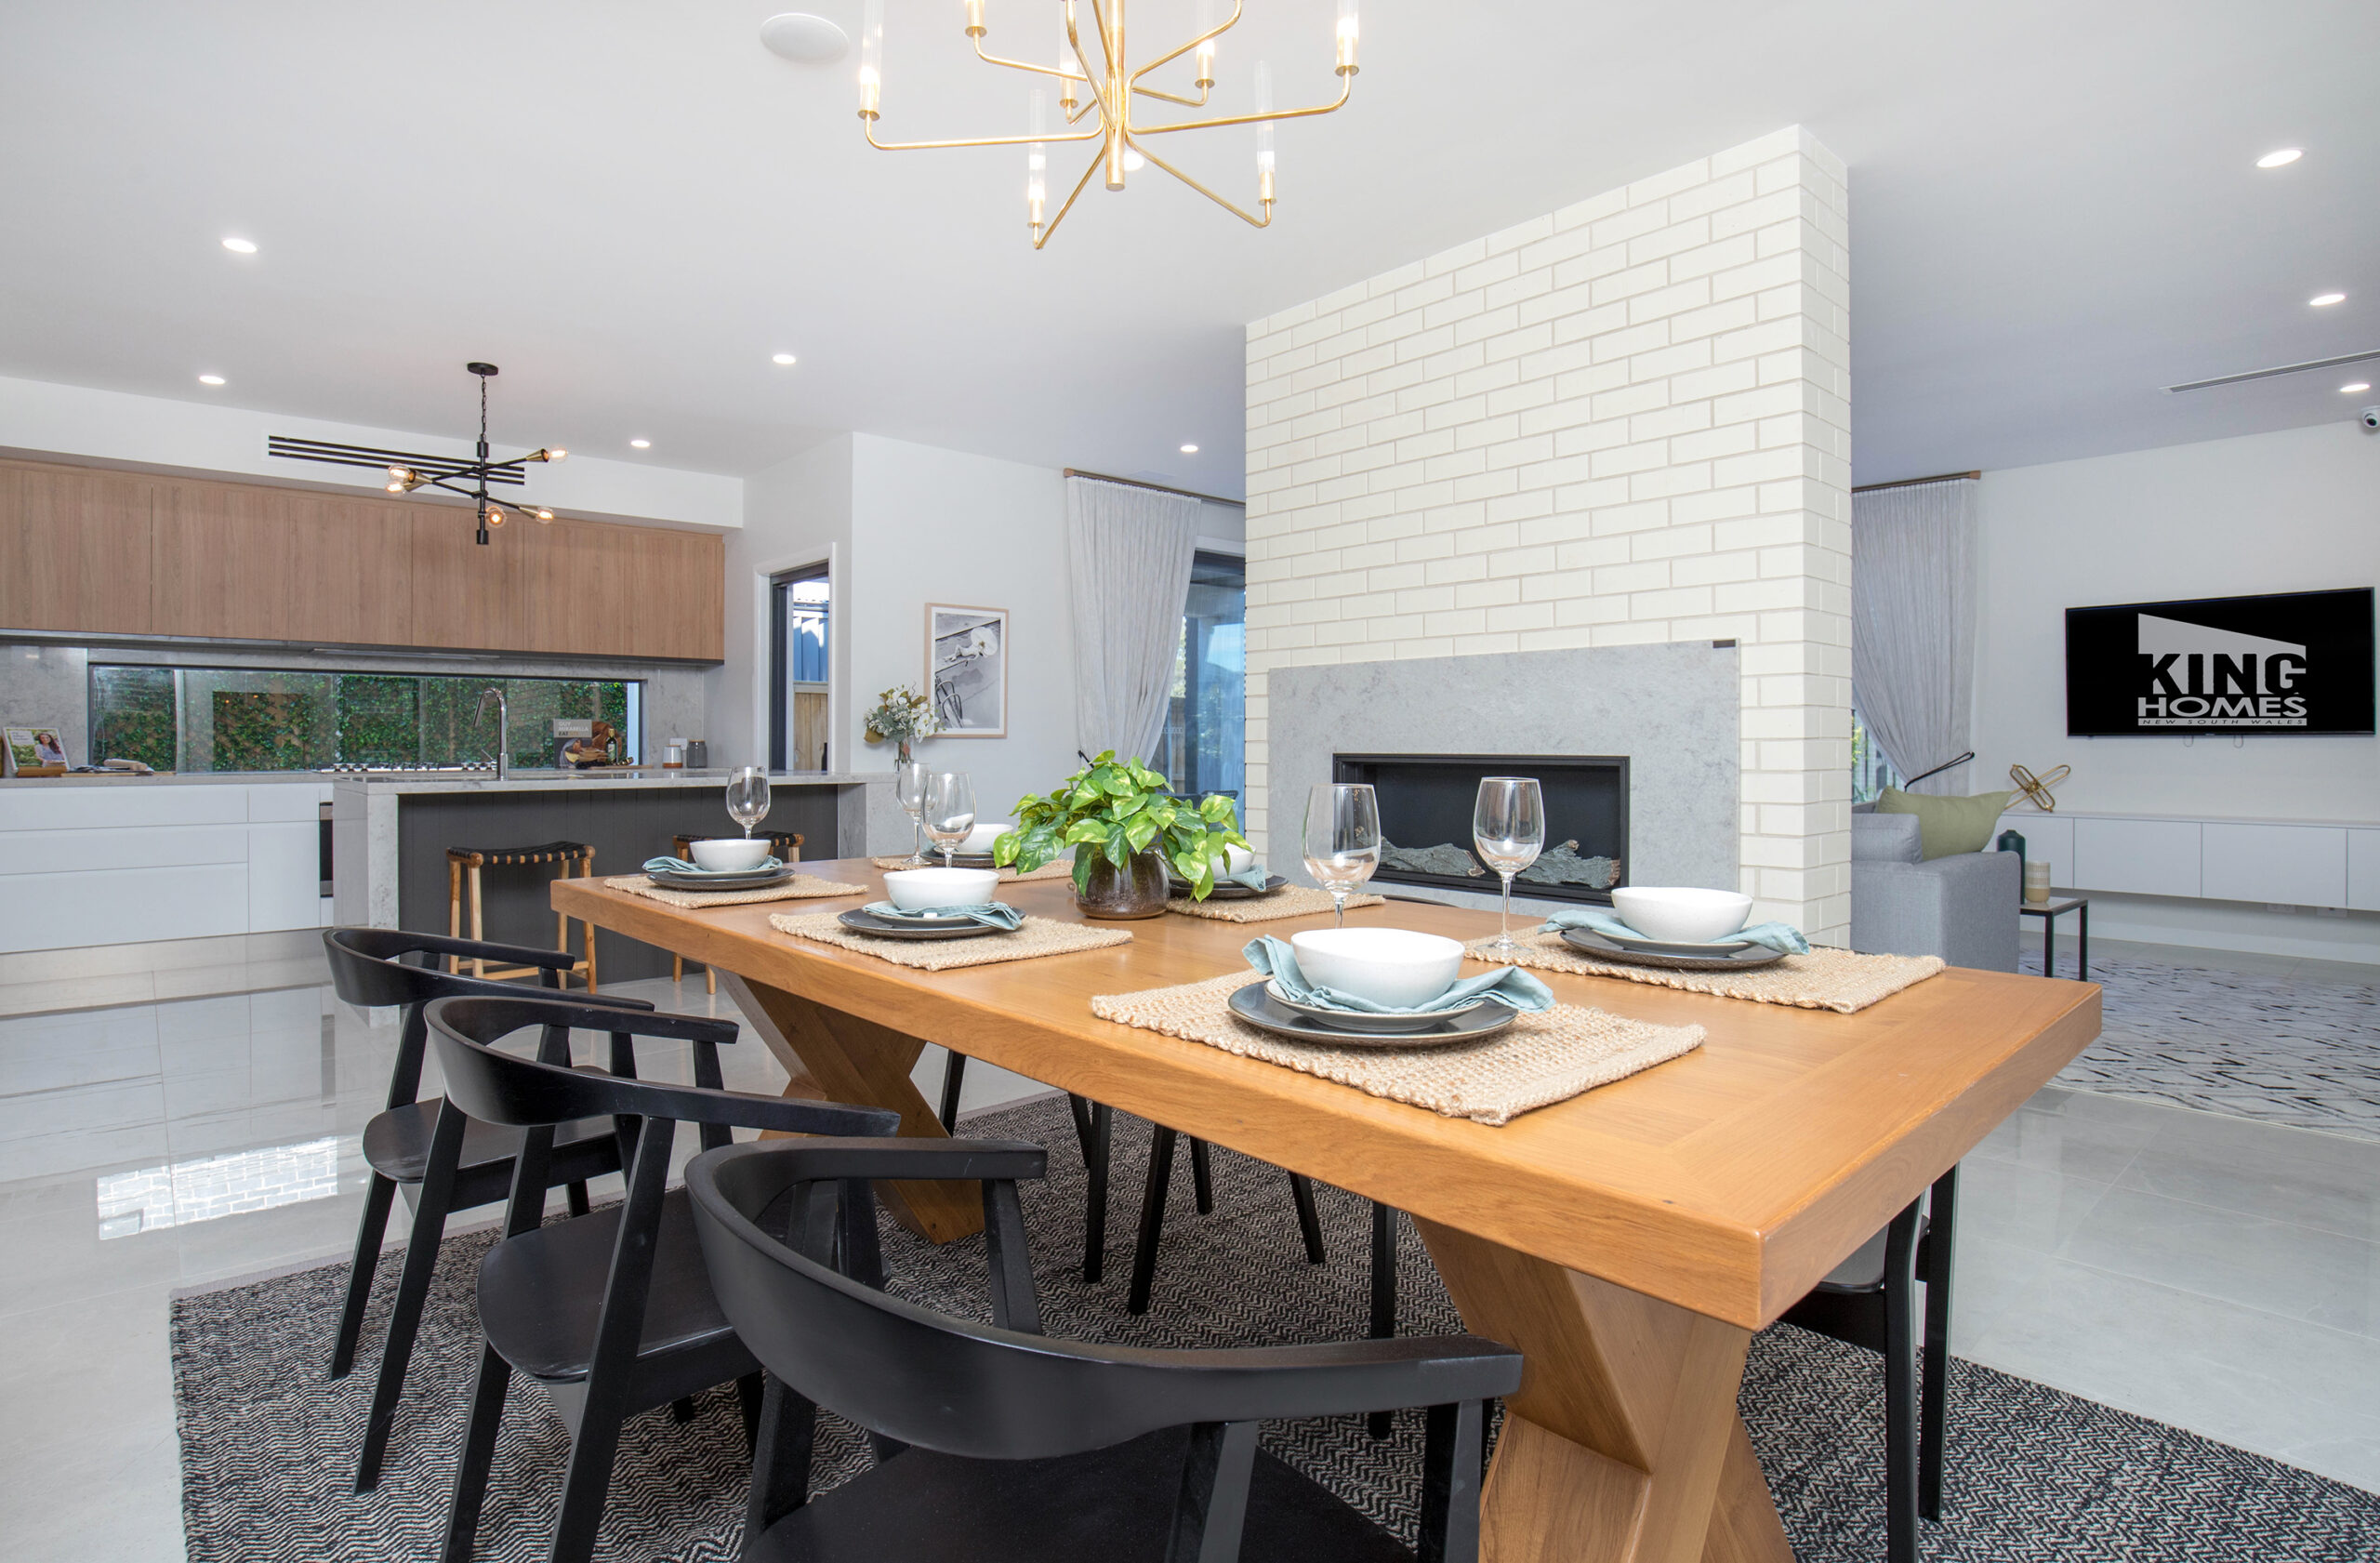 5 Potential Hidden Costs You Should Discuss With Your Builder